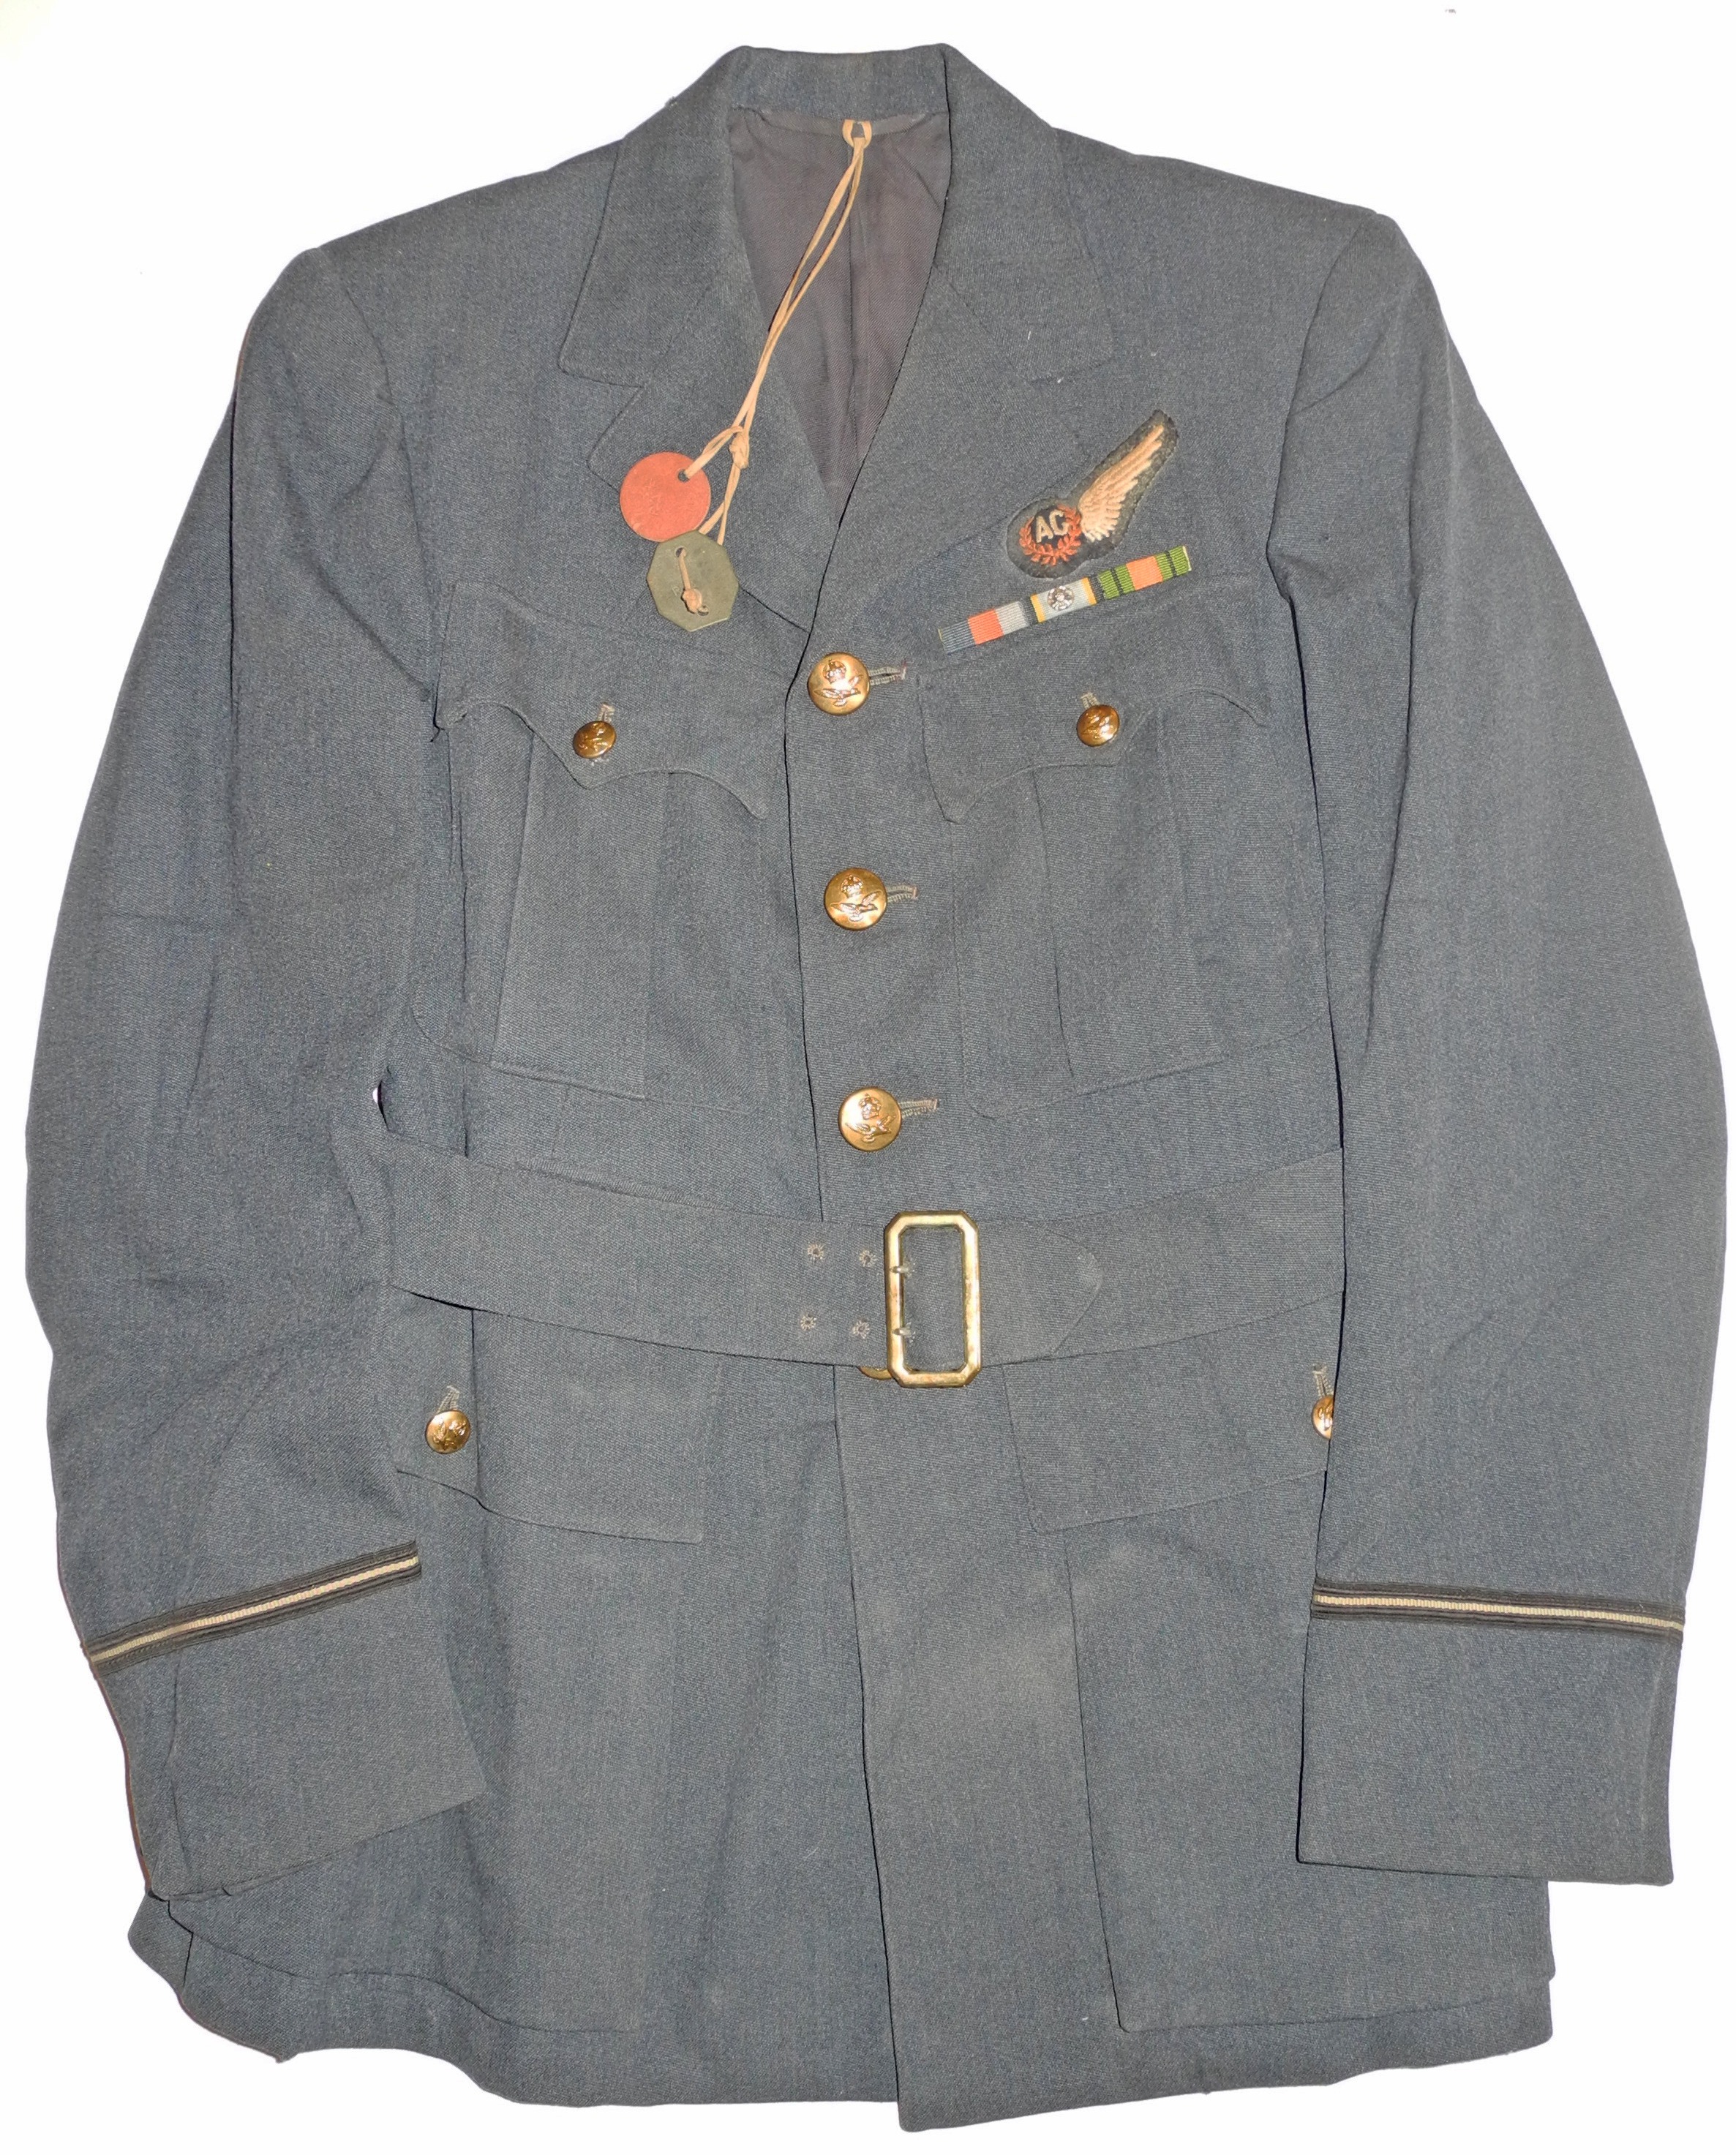 ID'd RAF Air Gunner uniform jacket